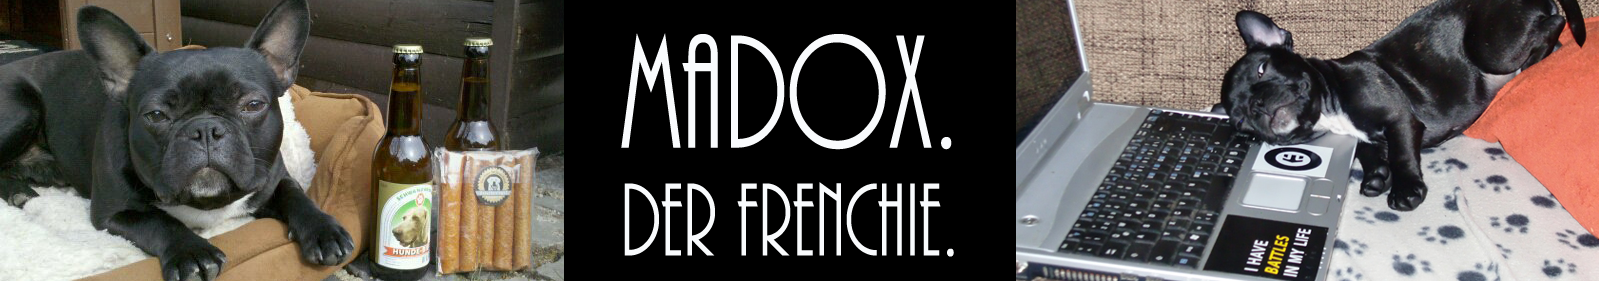 Madox. Der Frenchie.